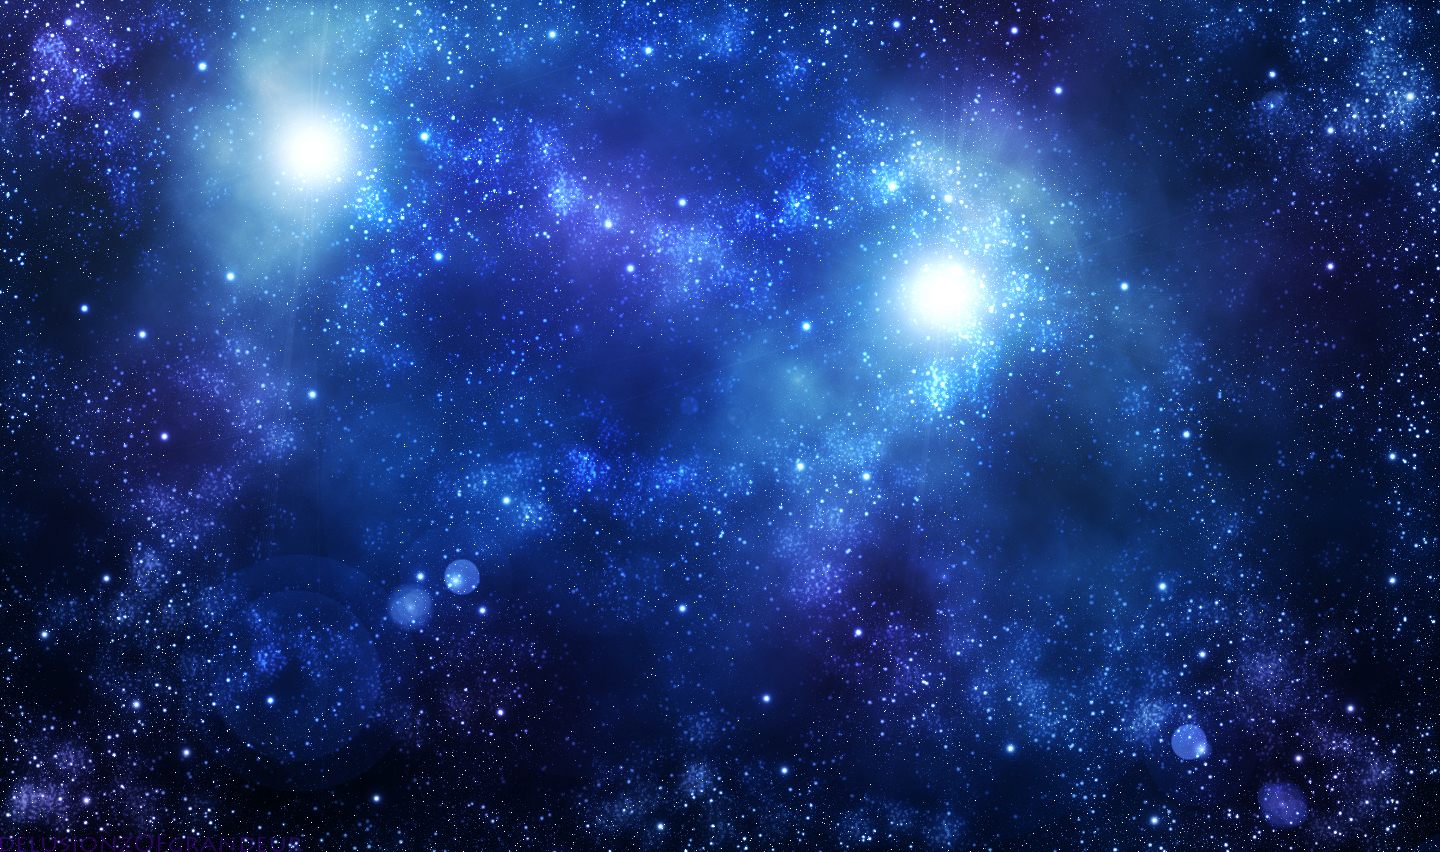 Space Galaxy HD Wallpapers Space Galaxy HD Wallpapers Check out the 1440x852